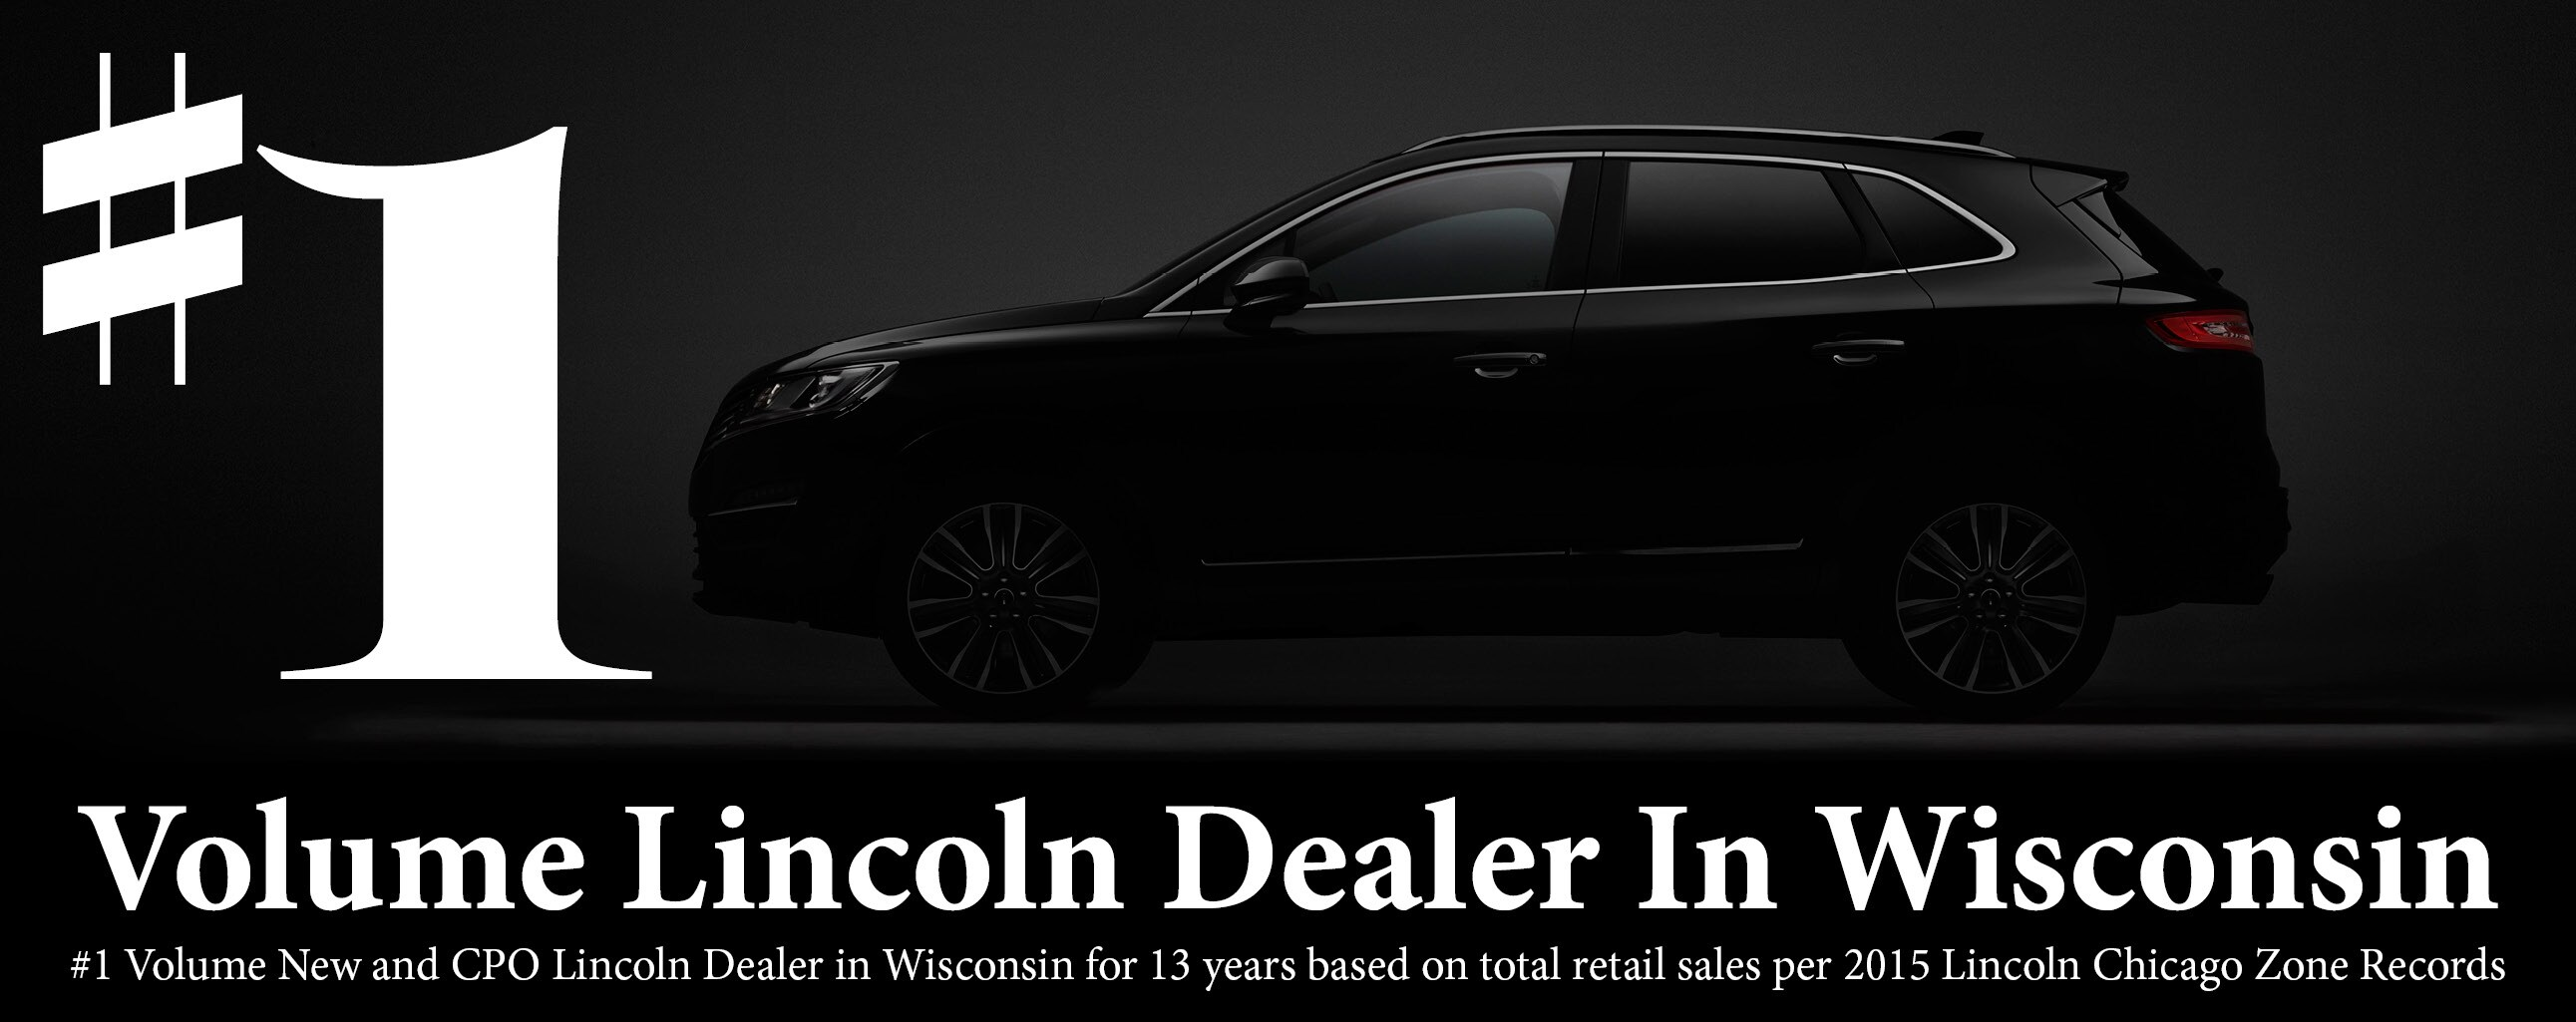 new dealer brand milwaukee symbol and lincoln meaning logo car history